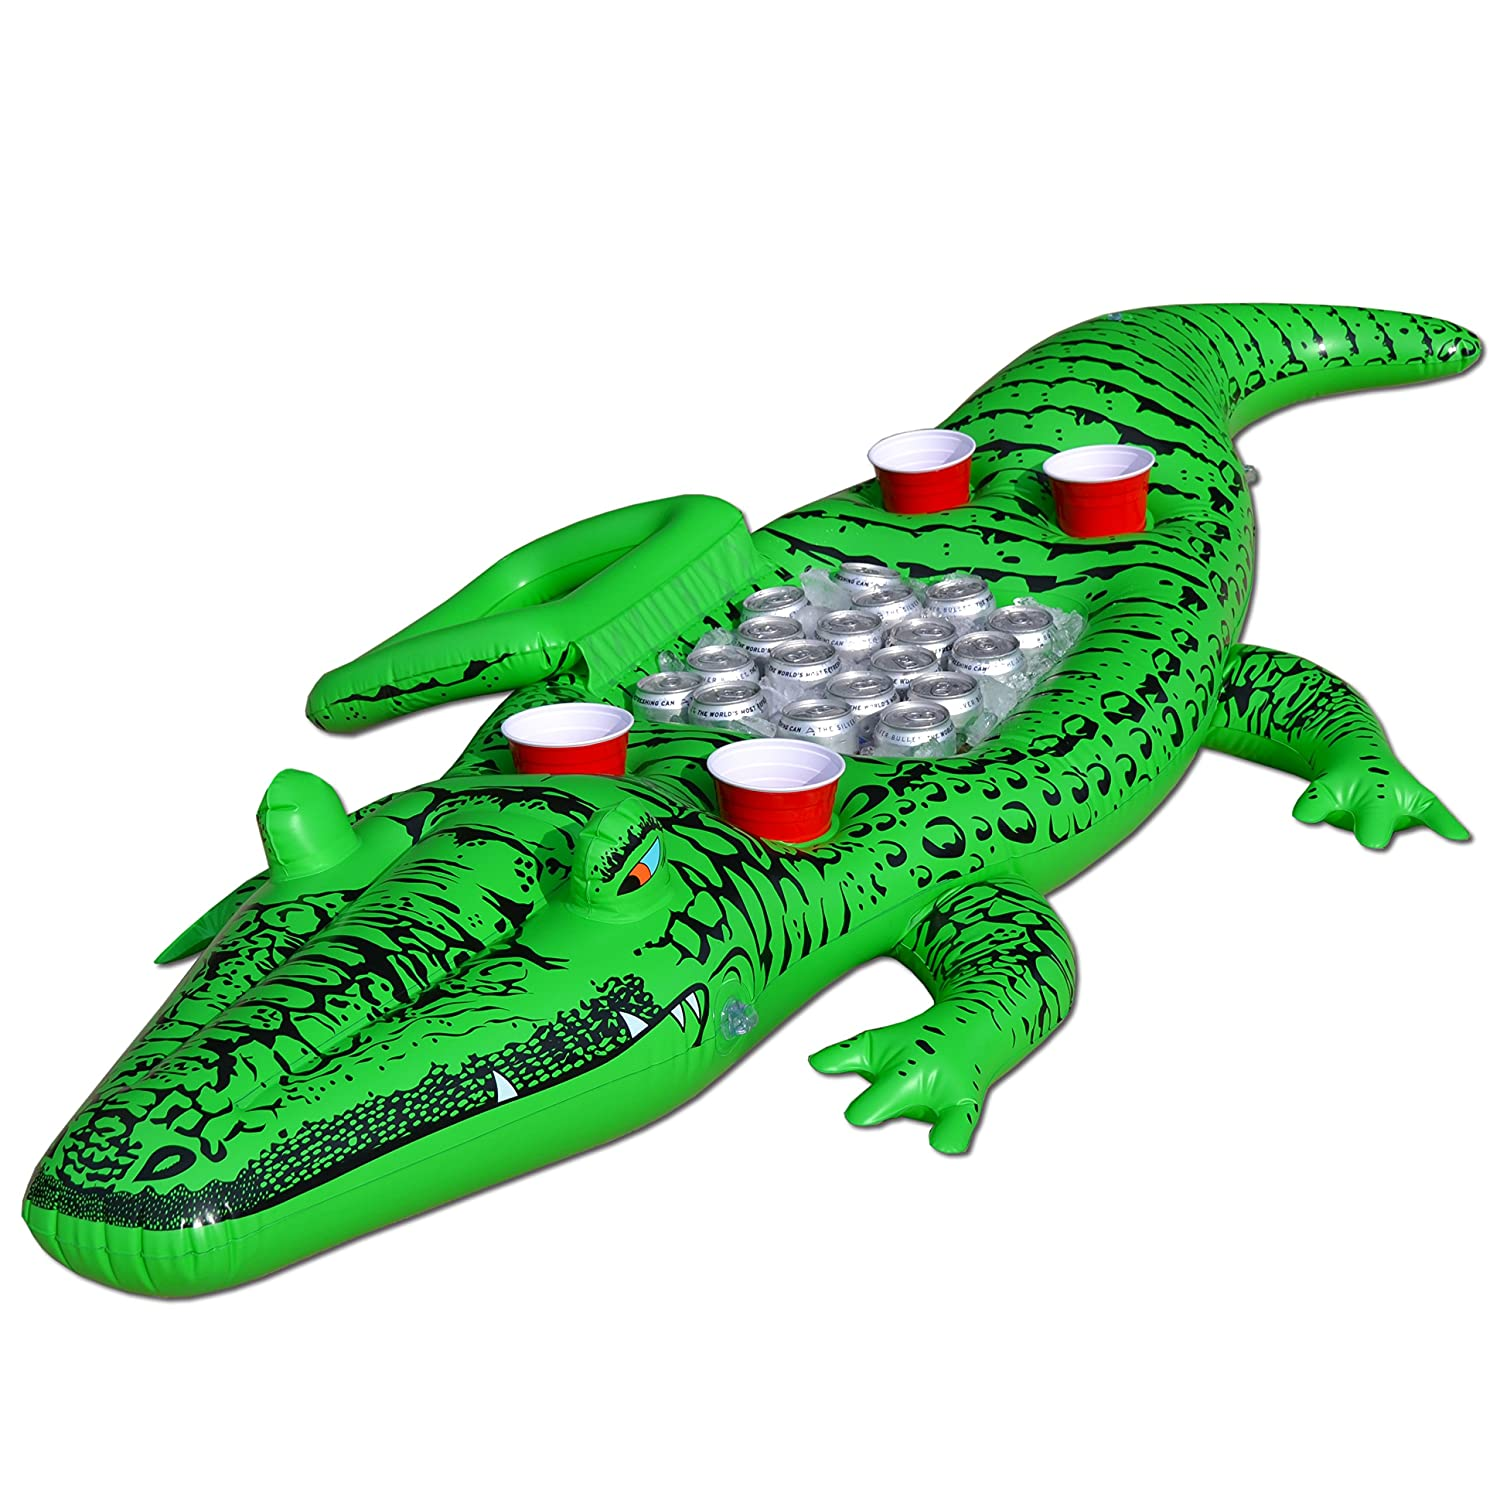 Amazon GoFloats Giant Party Gator Floating Alligator with